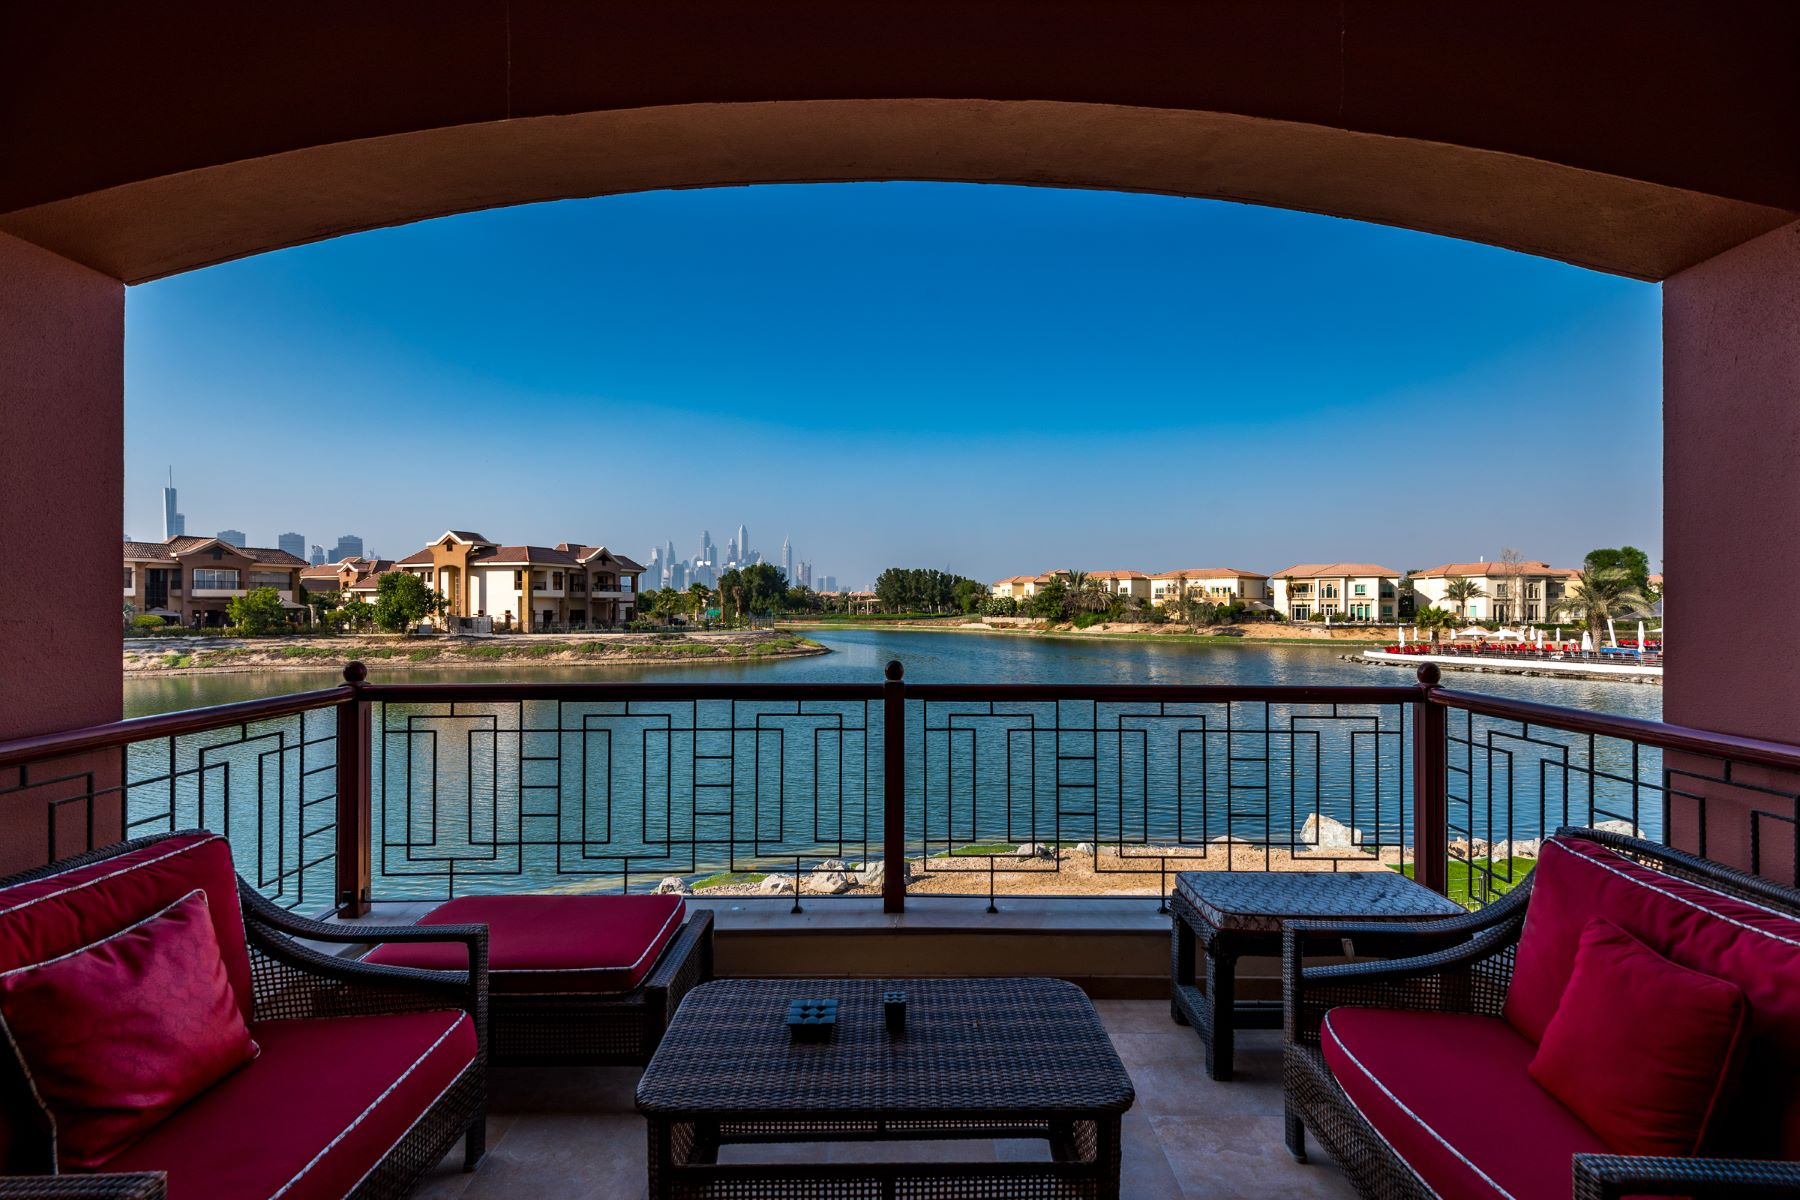 단독 가정 주택 용 매매 에 Luxury Mansion for Sale in Jumeirah Island Jumeirah Islands The Mansions, Dubai, 00000 아랍에미리트